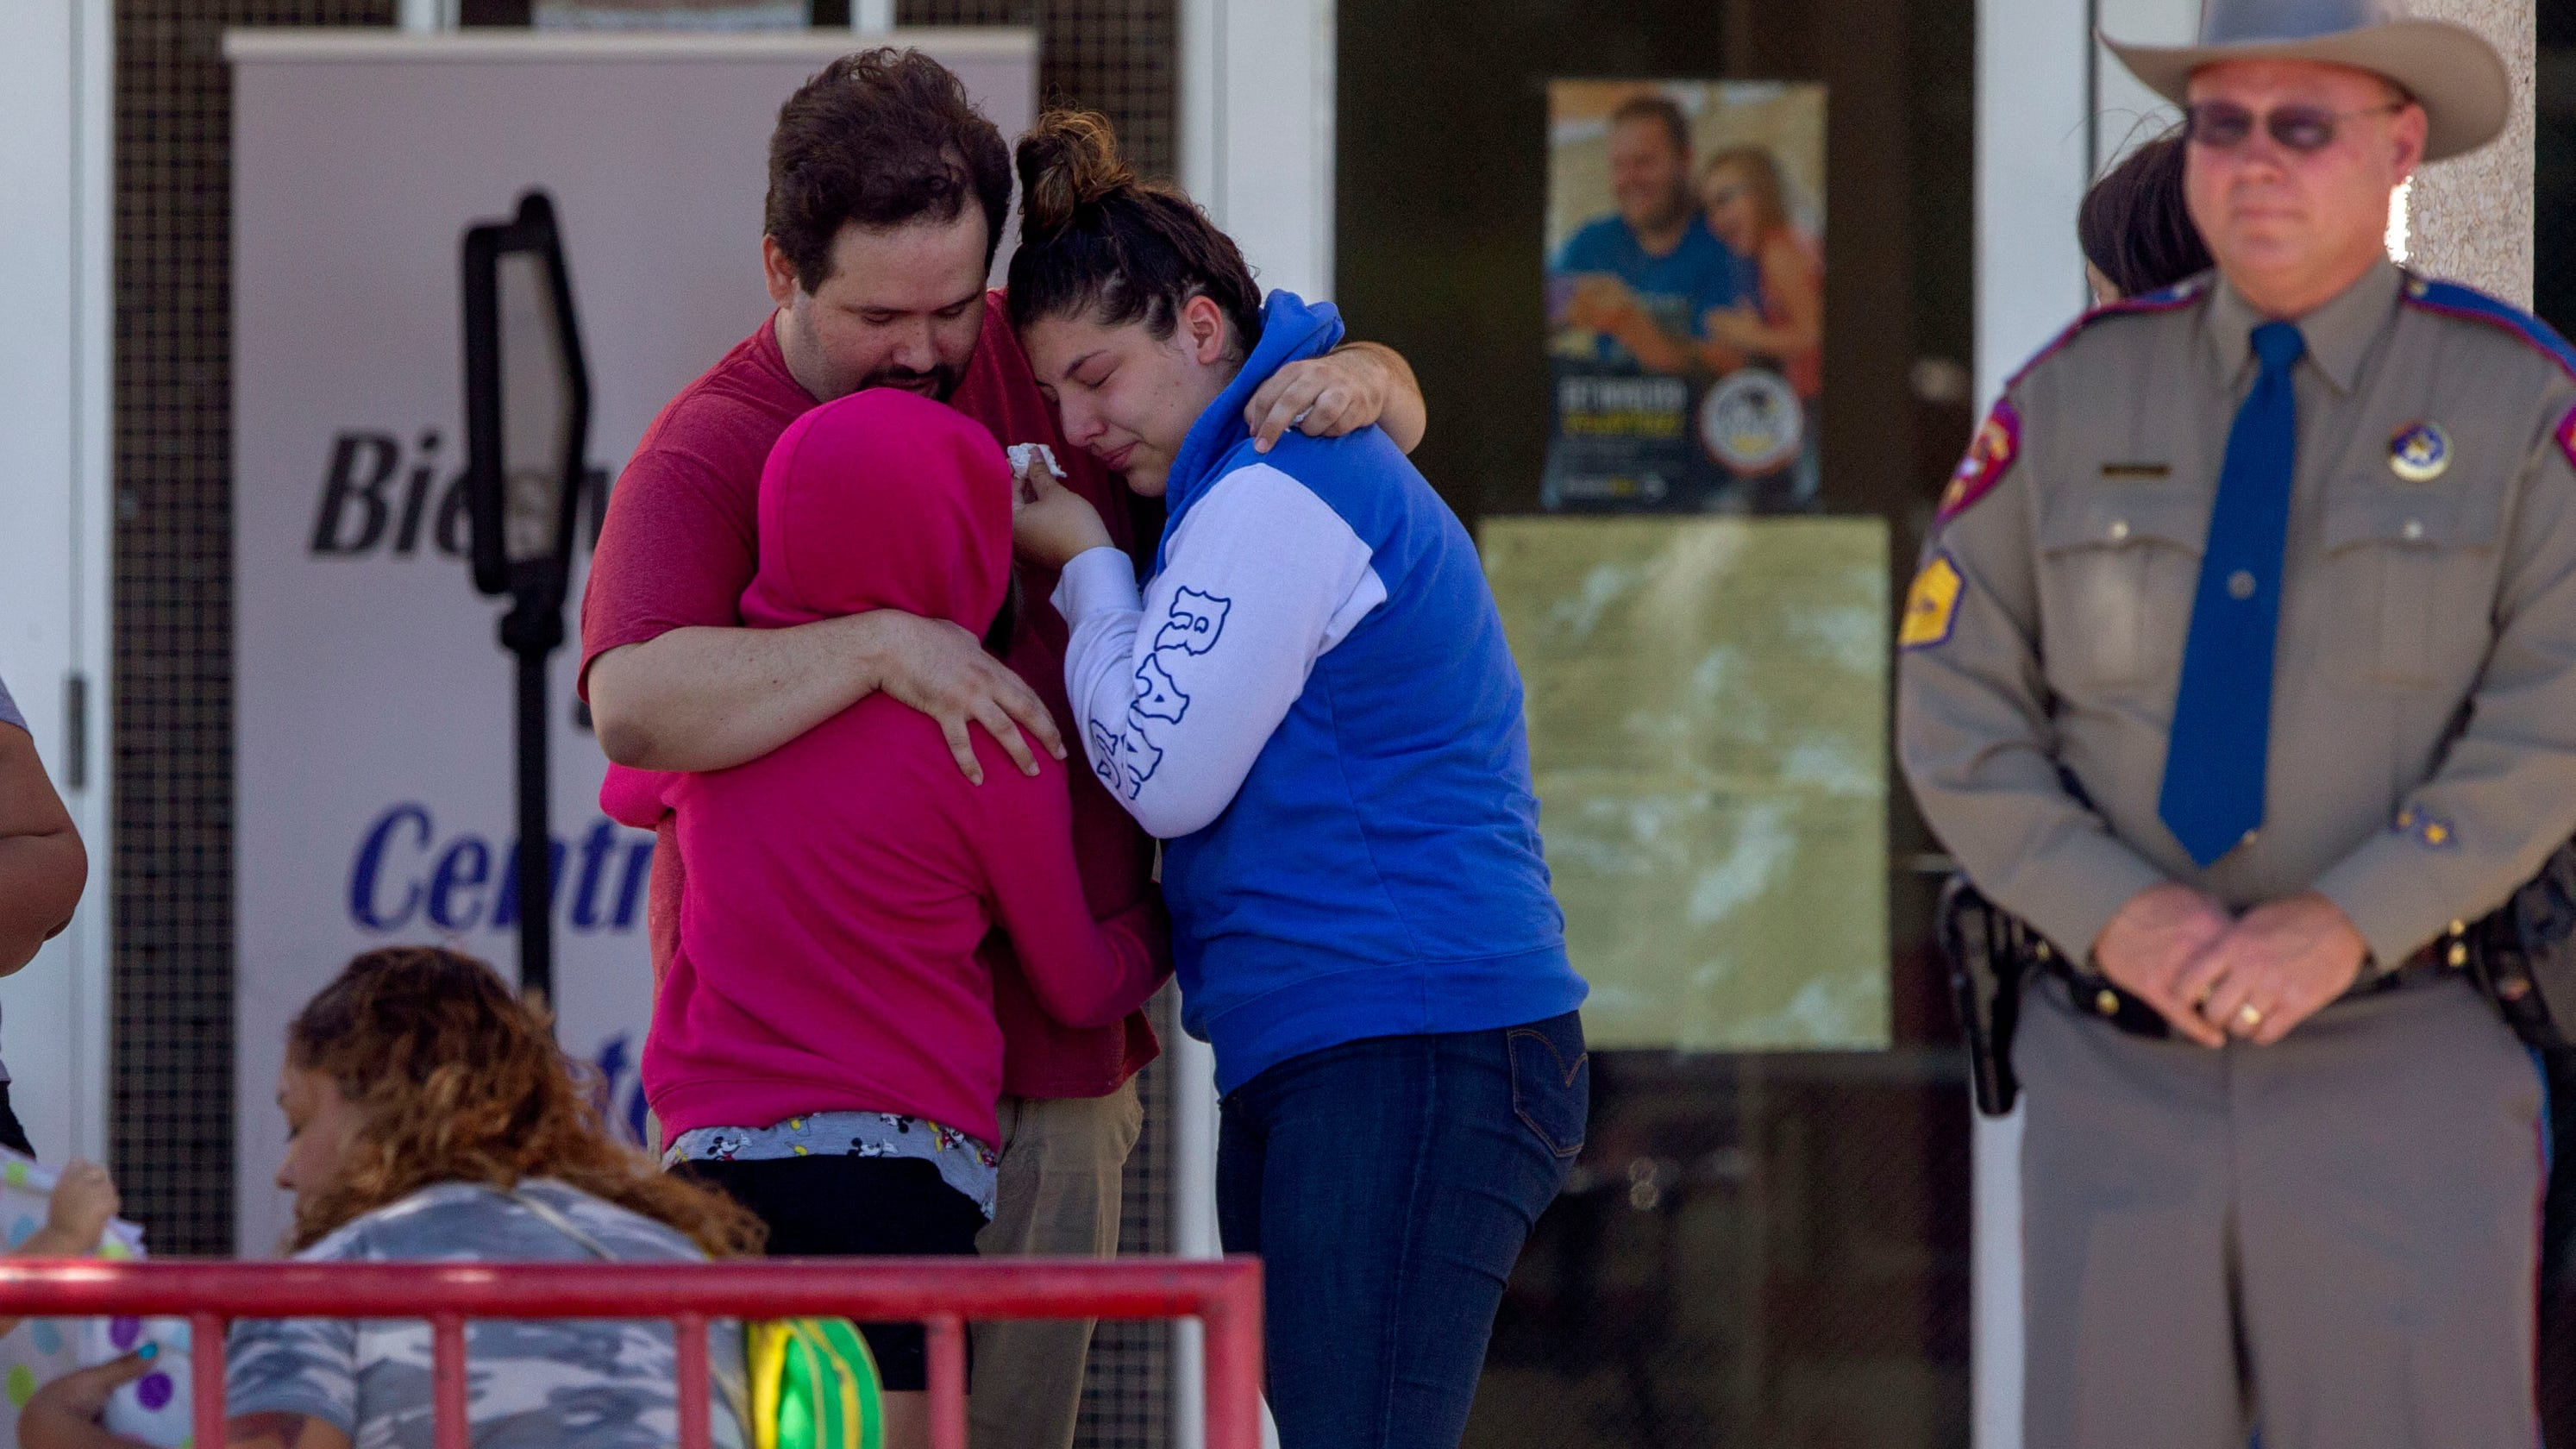 Trump Said 'Perhaps' More Needs to be Done on Gun Control Following Two Mass Shootings